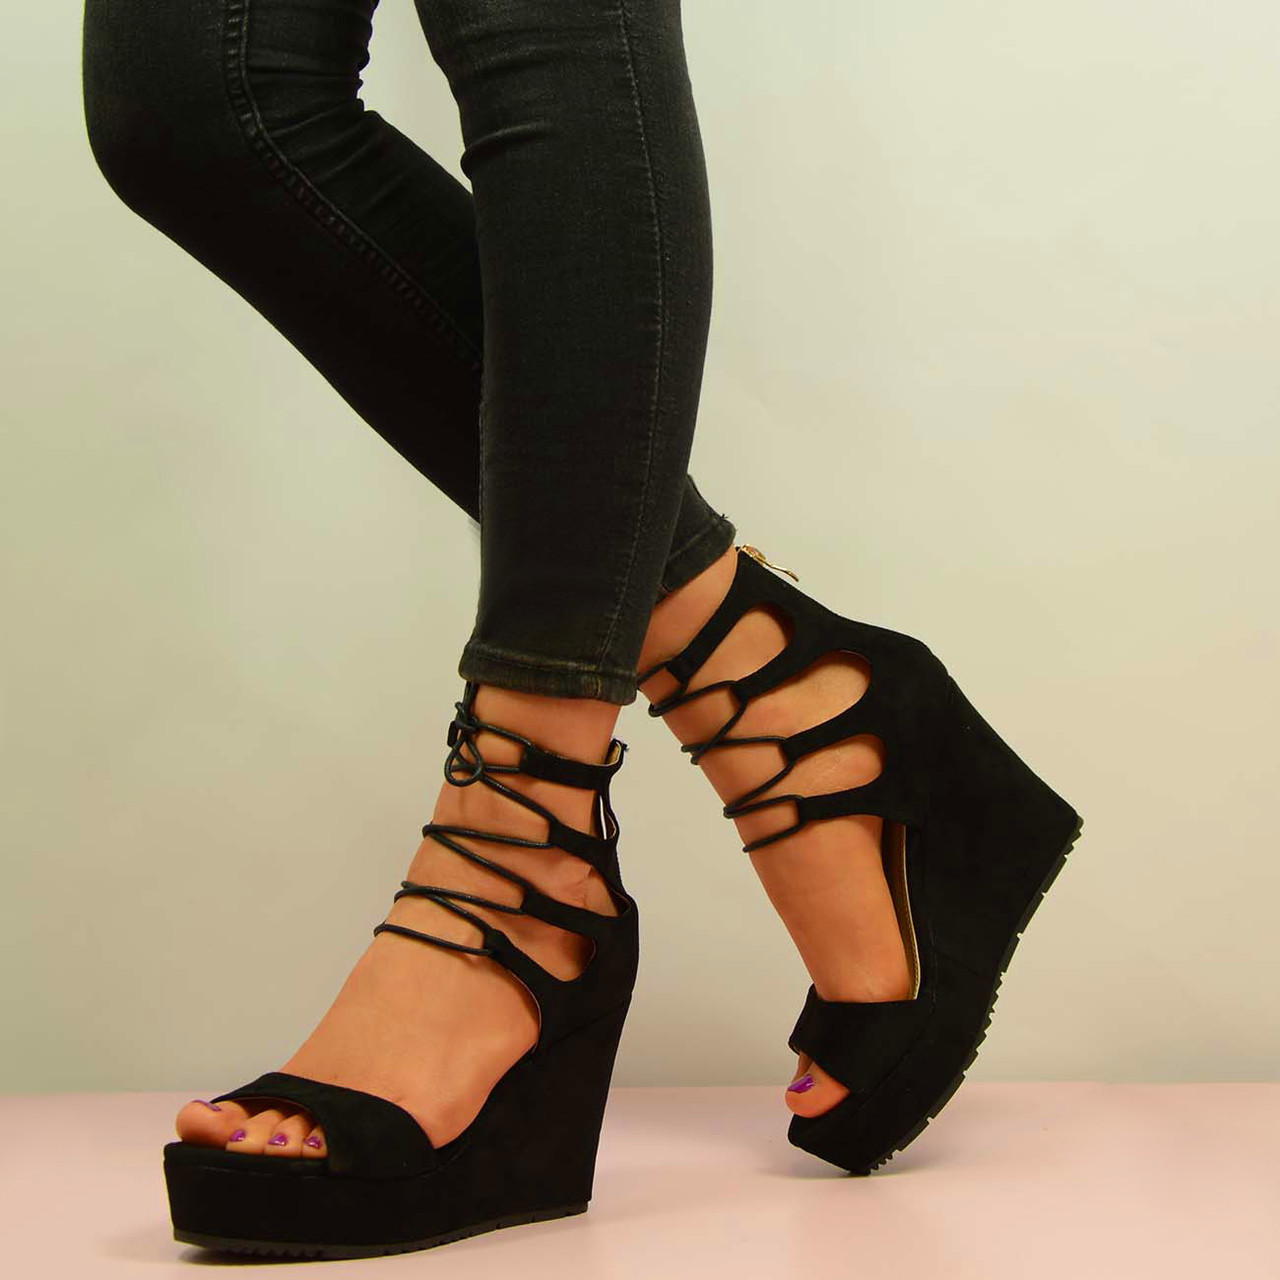 Wedge Heels With Laces